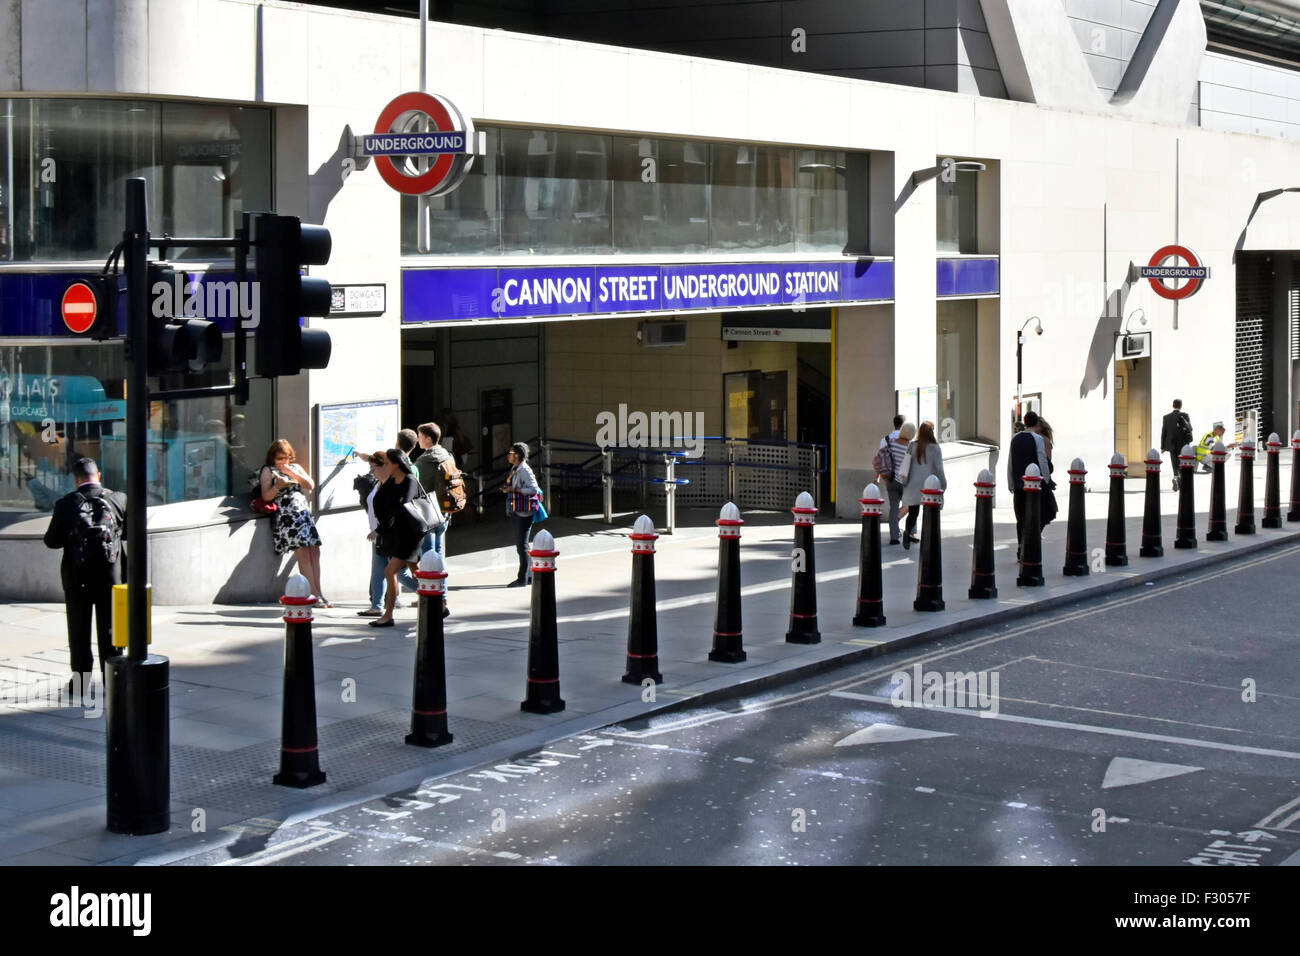 Cannon Street underground train station entrance with bollards protecting pavement & pedestrians City of London - Stock Image